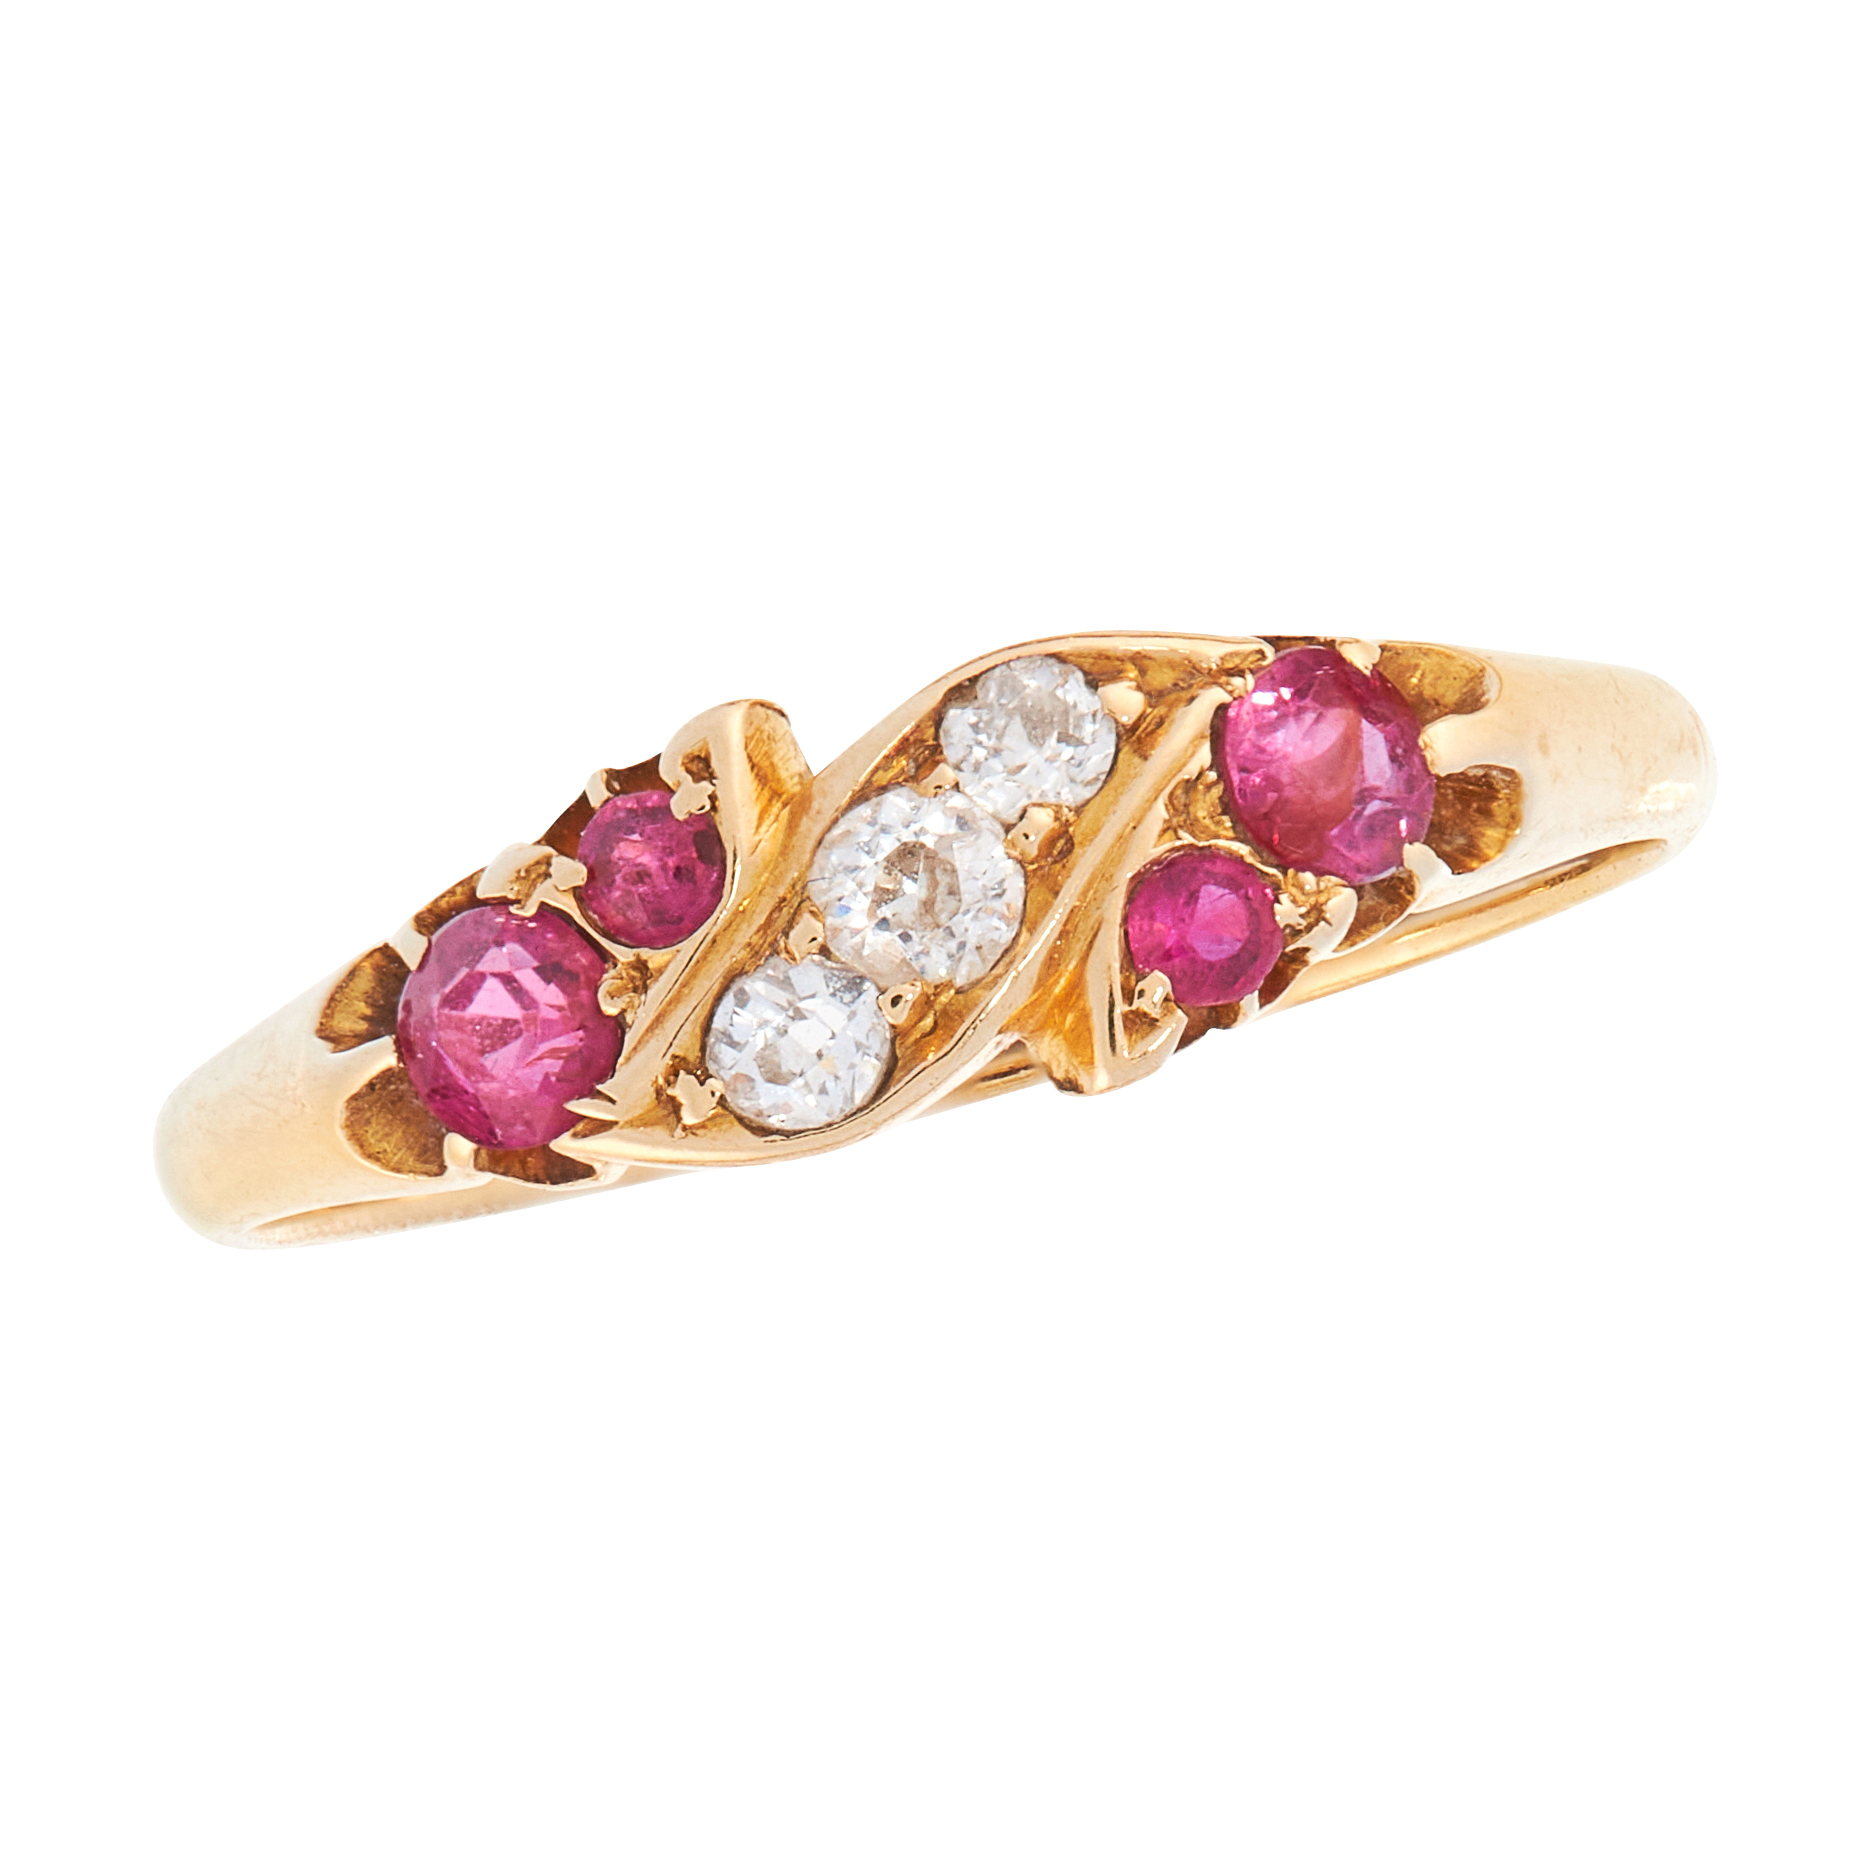 AN ANTIQUE RUBY AND DIAMOND DRESS RING, 1908 in 18ct yellow gold, the stylised scrolling band set